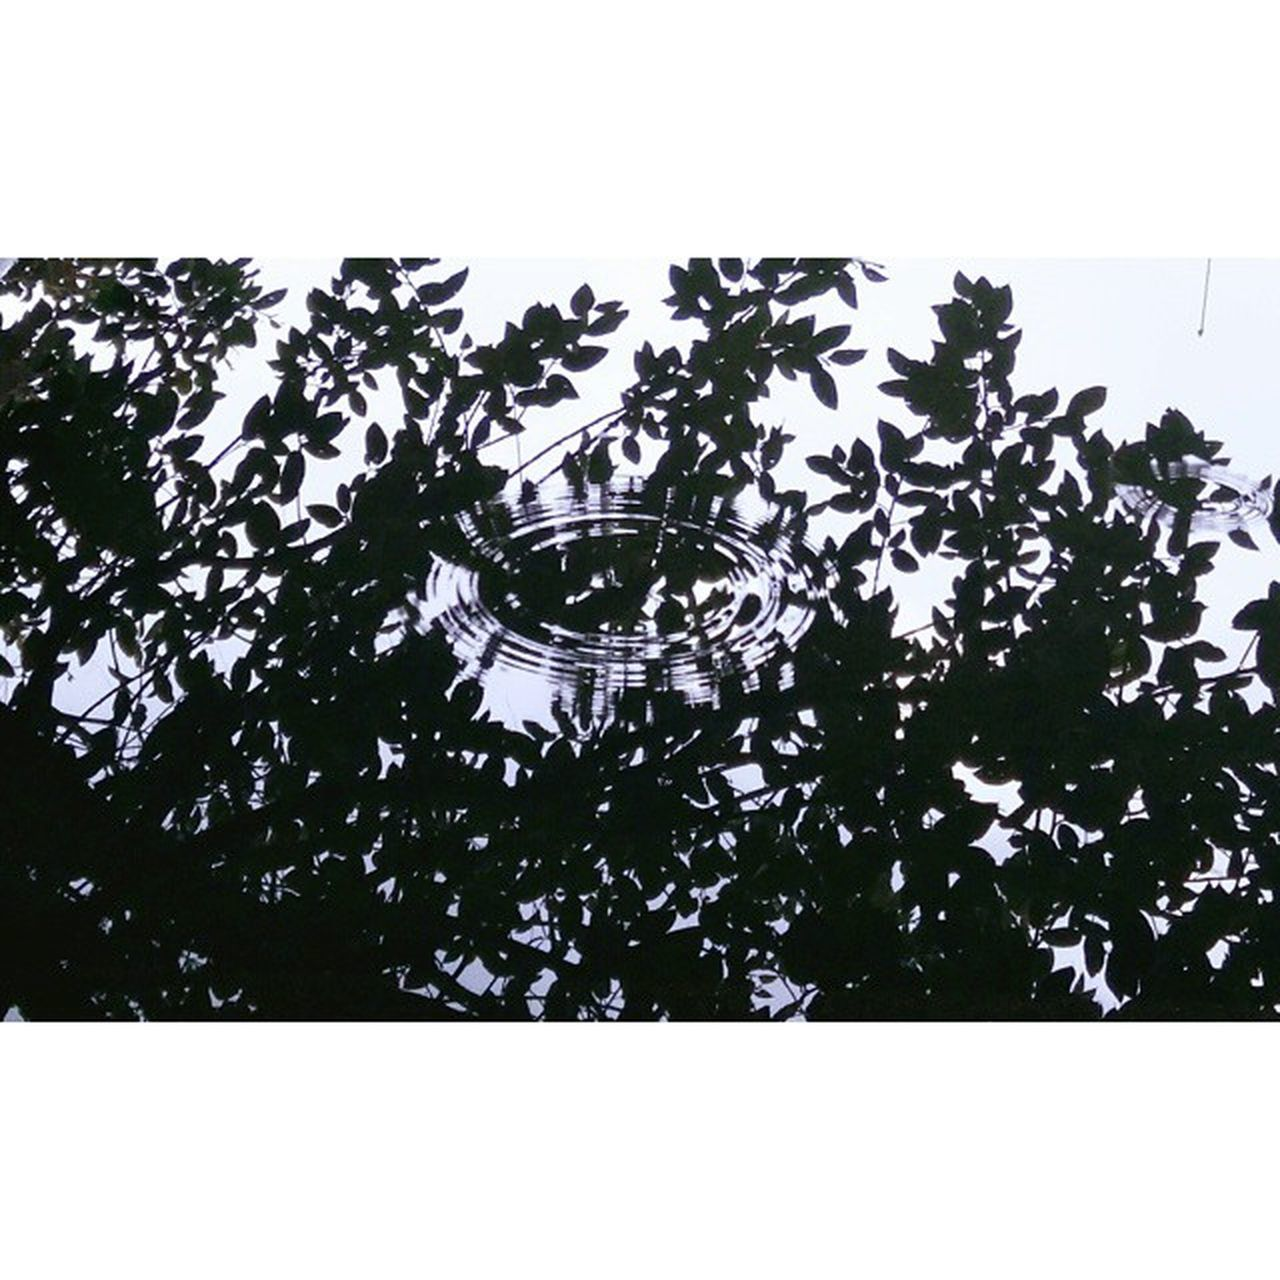 low angle view, no people, growth, tree, indoors, day, time, close-up